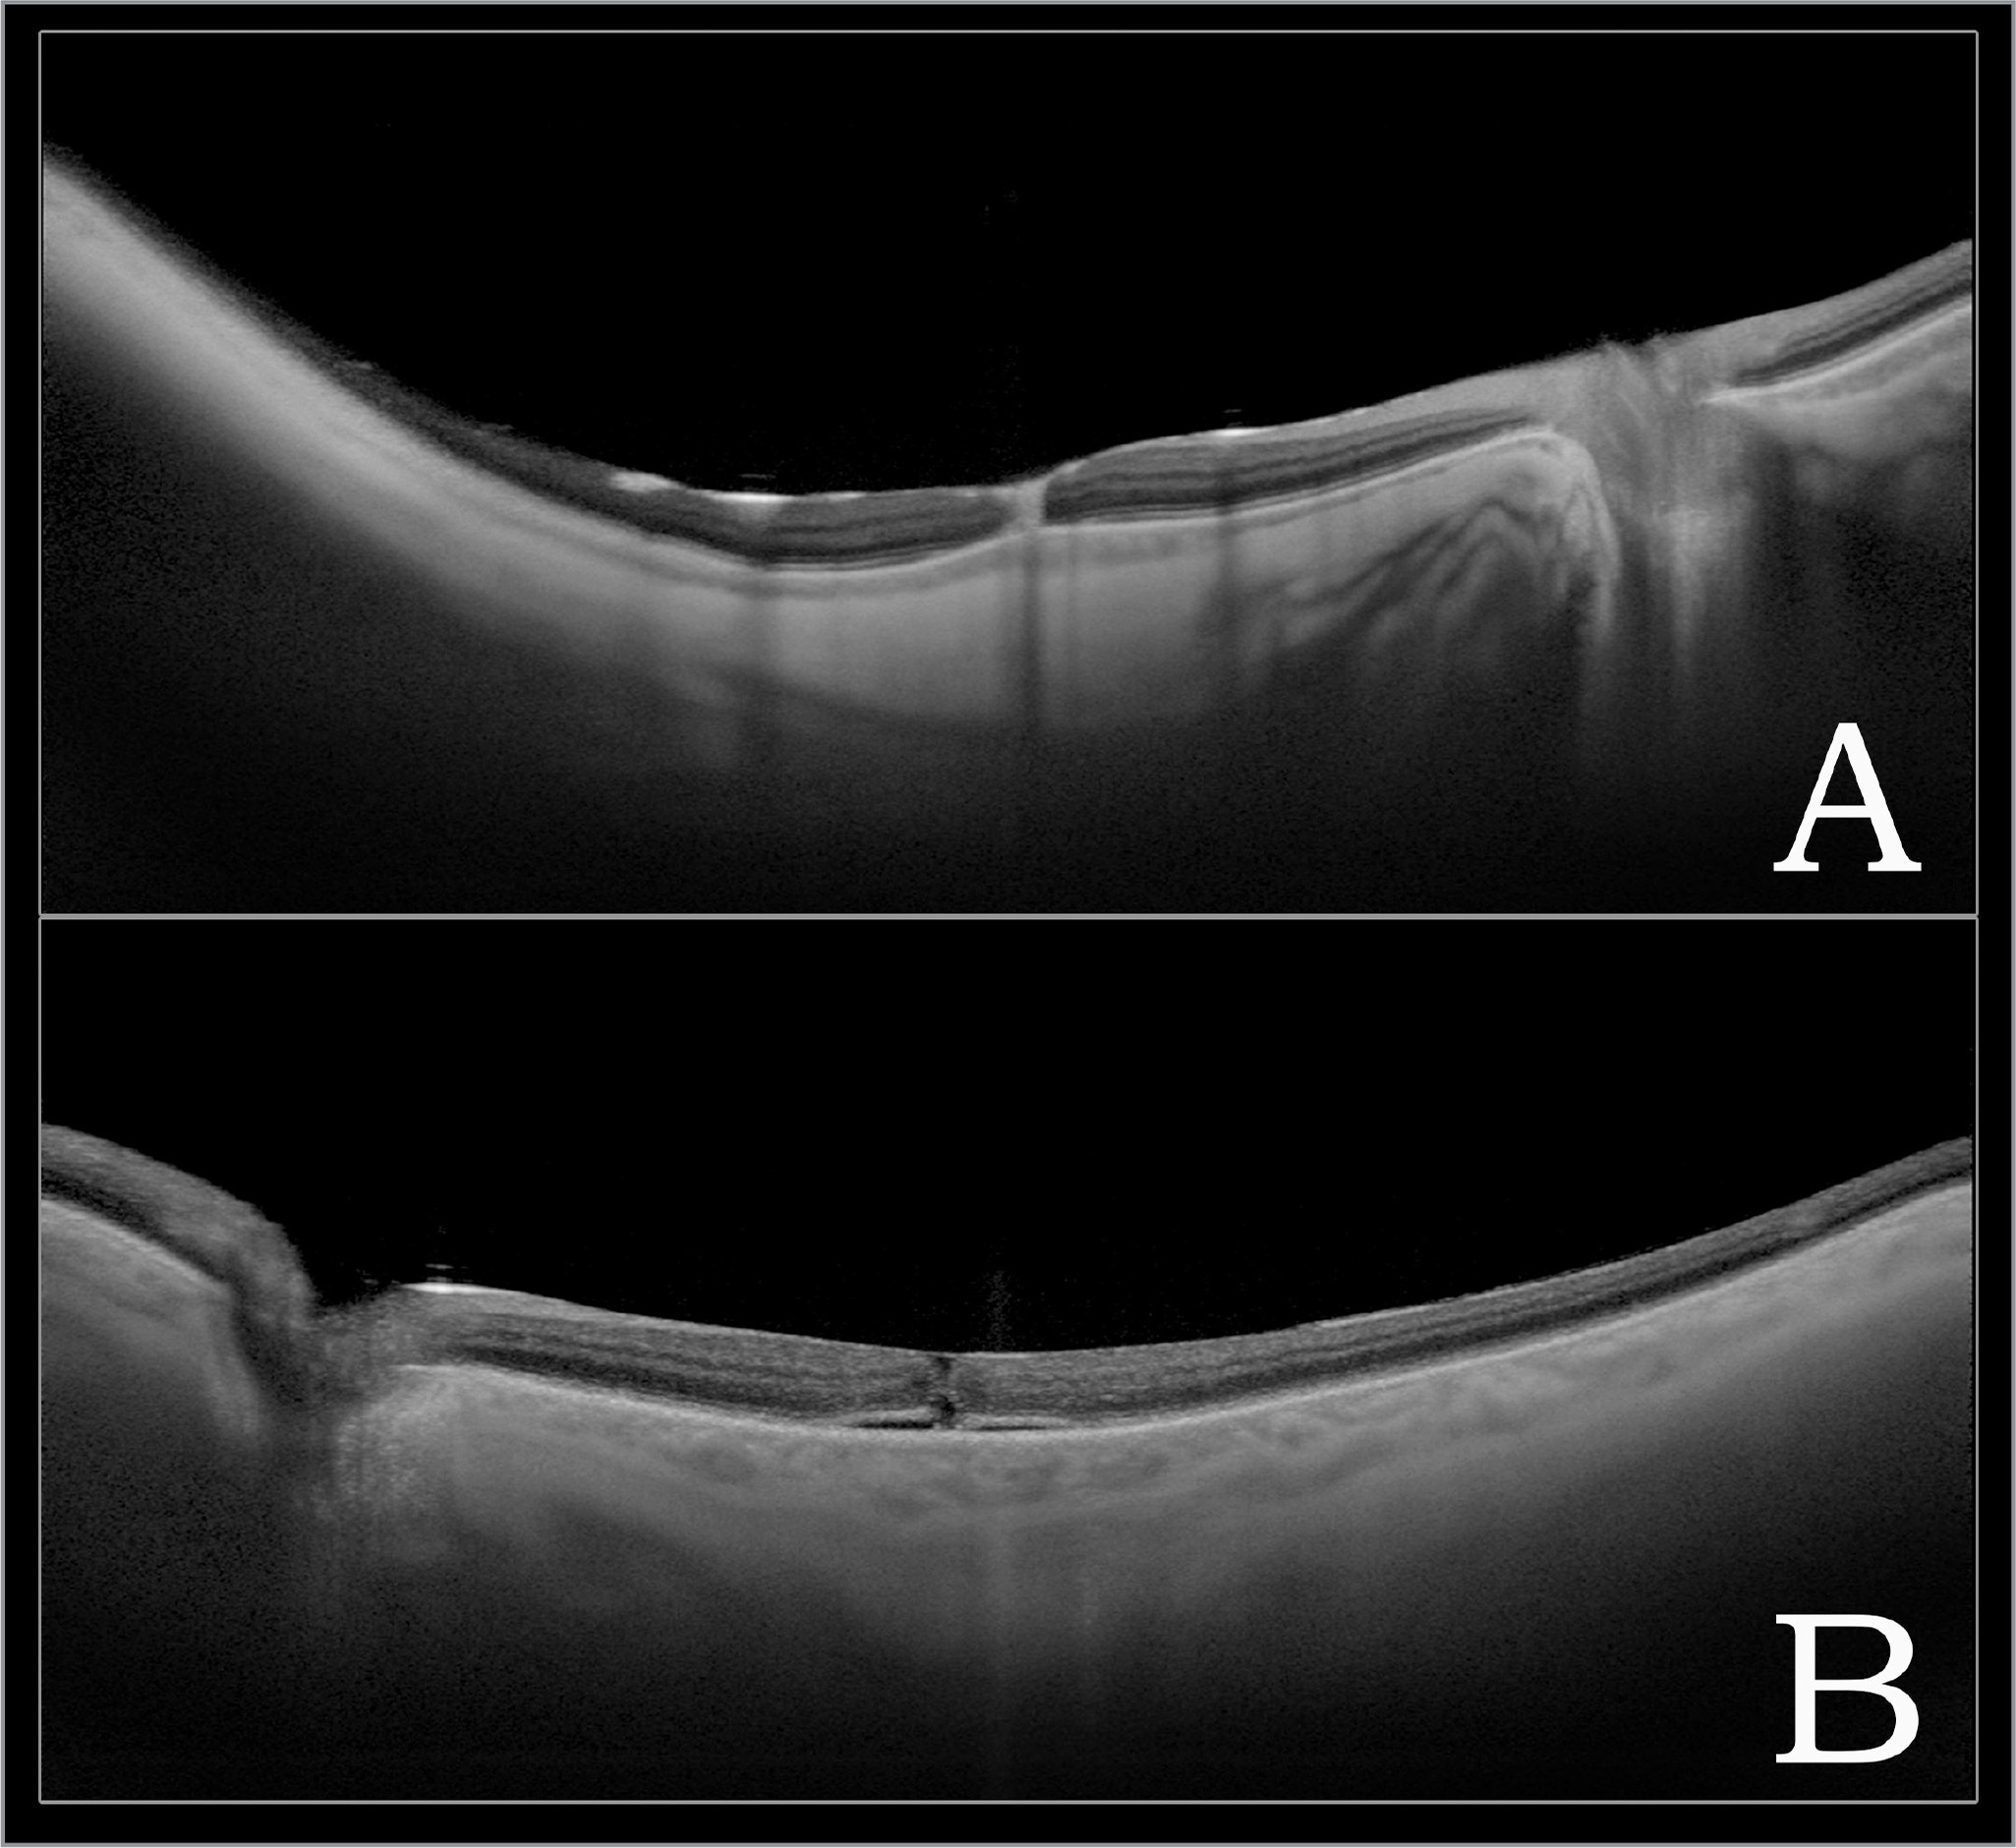 Representative swept-source optical coherence tomography image of macular hole (MH) closure statuses on postoperative day 1. (A) Complete MH closure marked by apposition of all retinal layers at the central vertical hyperreflective line, presumably the site of tissue regeneration. (B) Partial MH closure showing physical approximation of the retinal layers without complete apposition of the tissue.